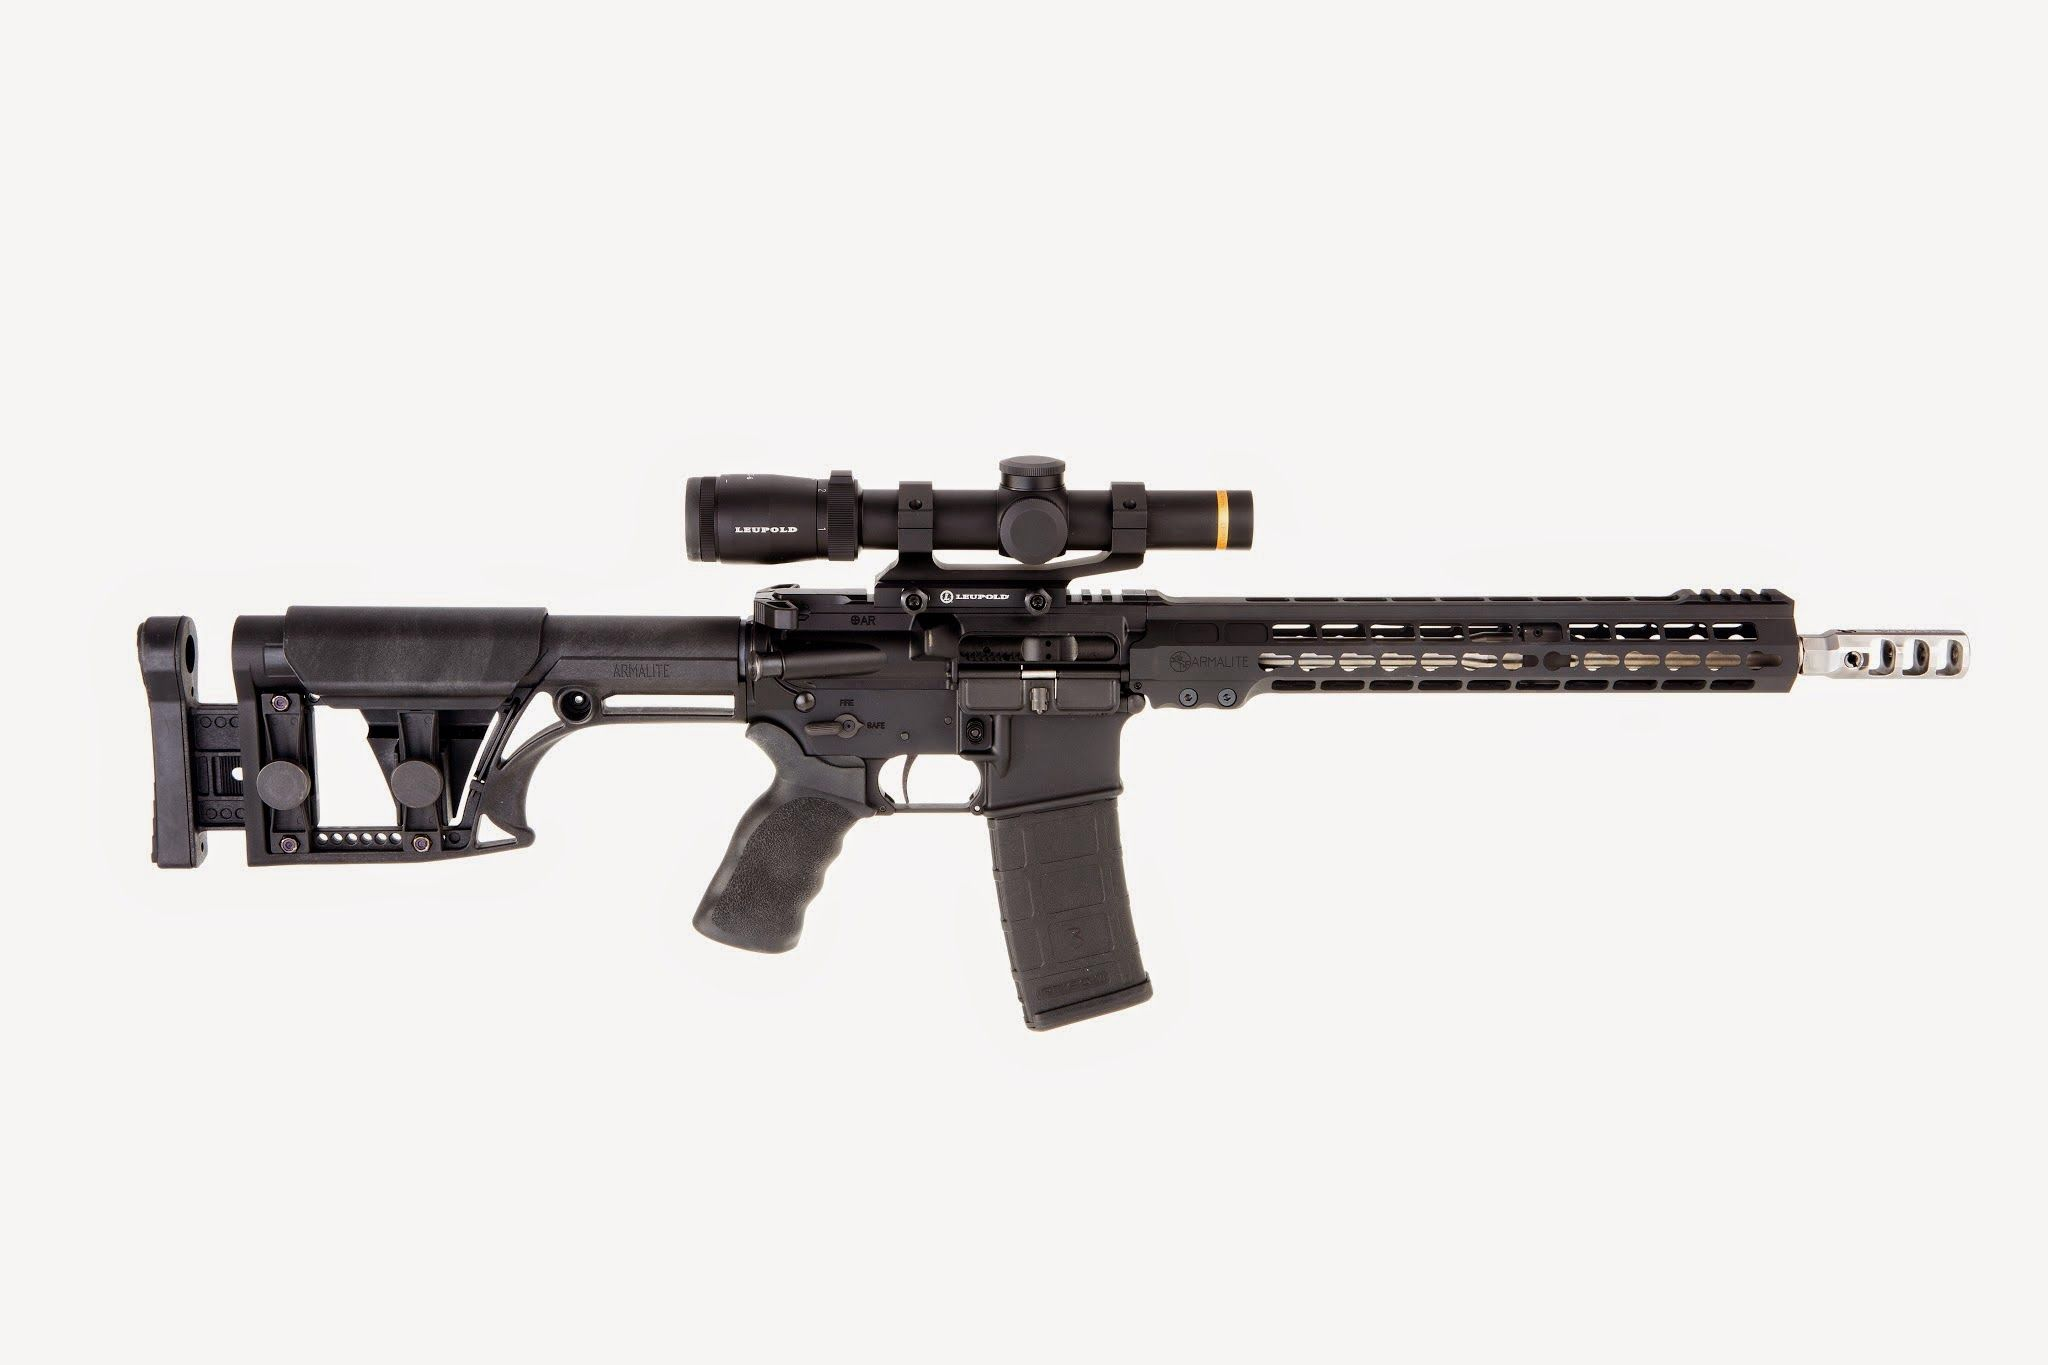 Featured in our March issue, on newsstands now, is the ArmaLite M-15 3-gun rifle. Designed for competition, the M-15 boasts a number of upgrades, enhancements and options you'd expect in a 3-gun rifle.